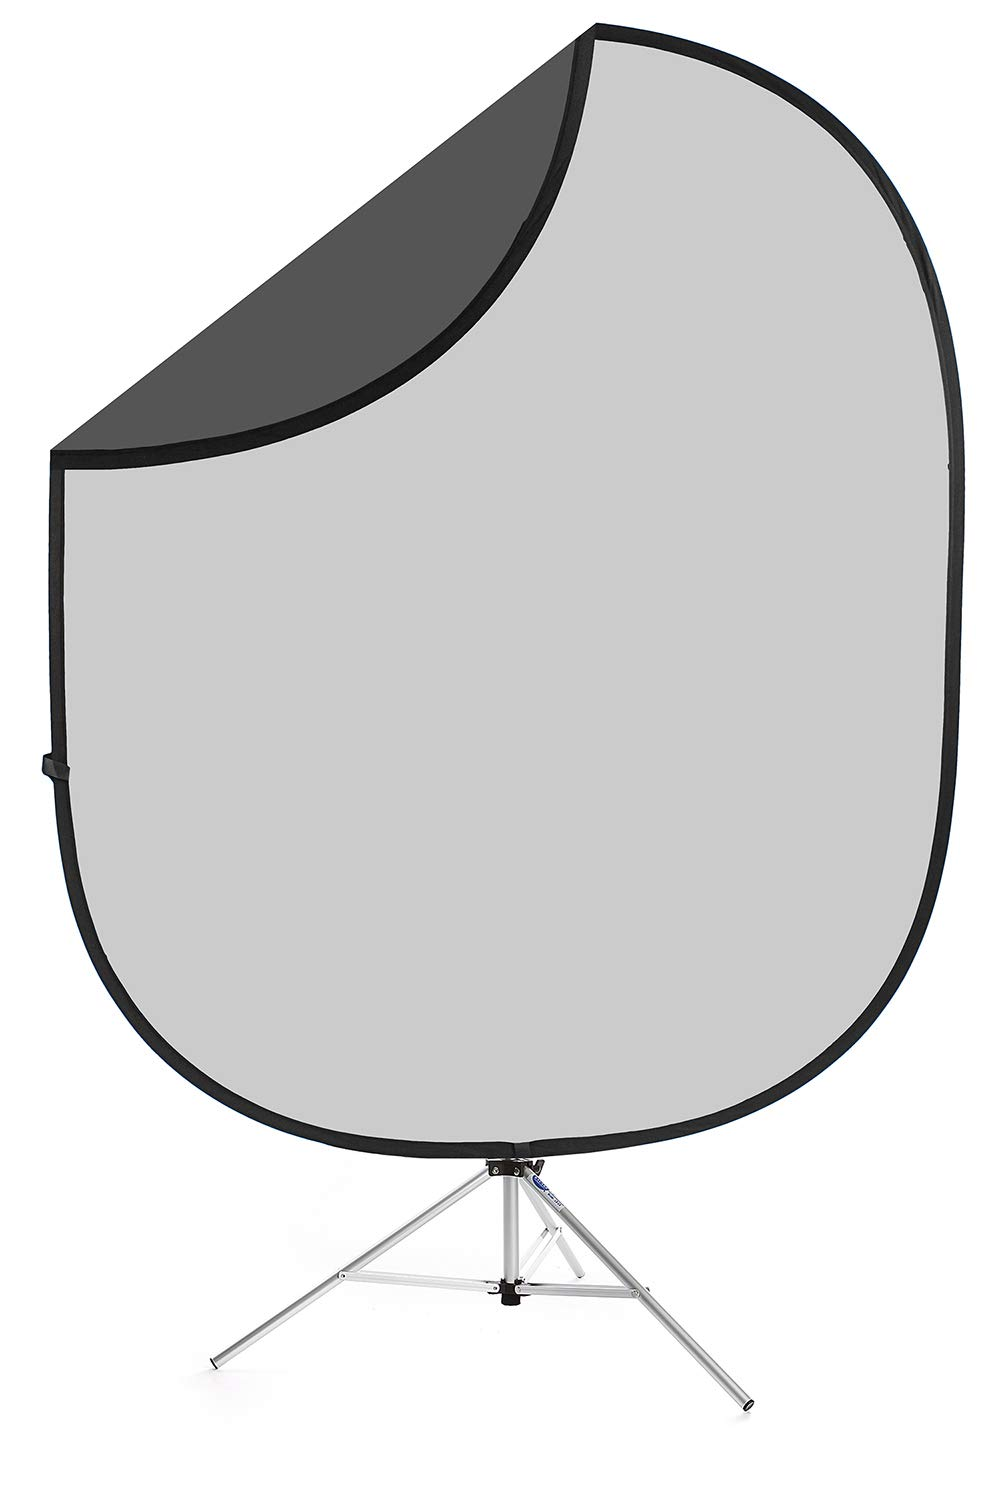 Savage Dark Gray/Light Gray Collapsible Backdrop, 5' W x 6' H by Savage